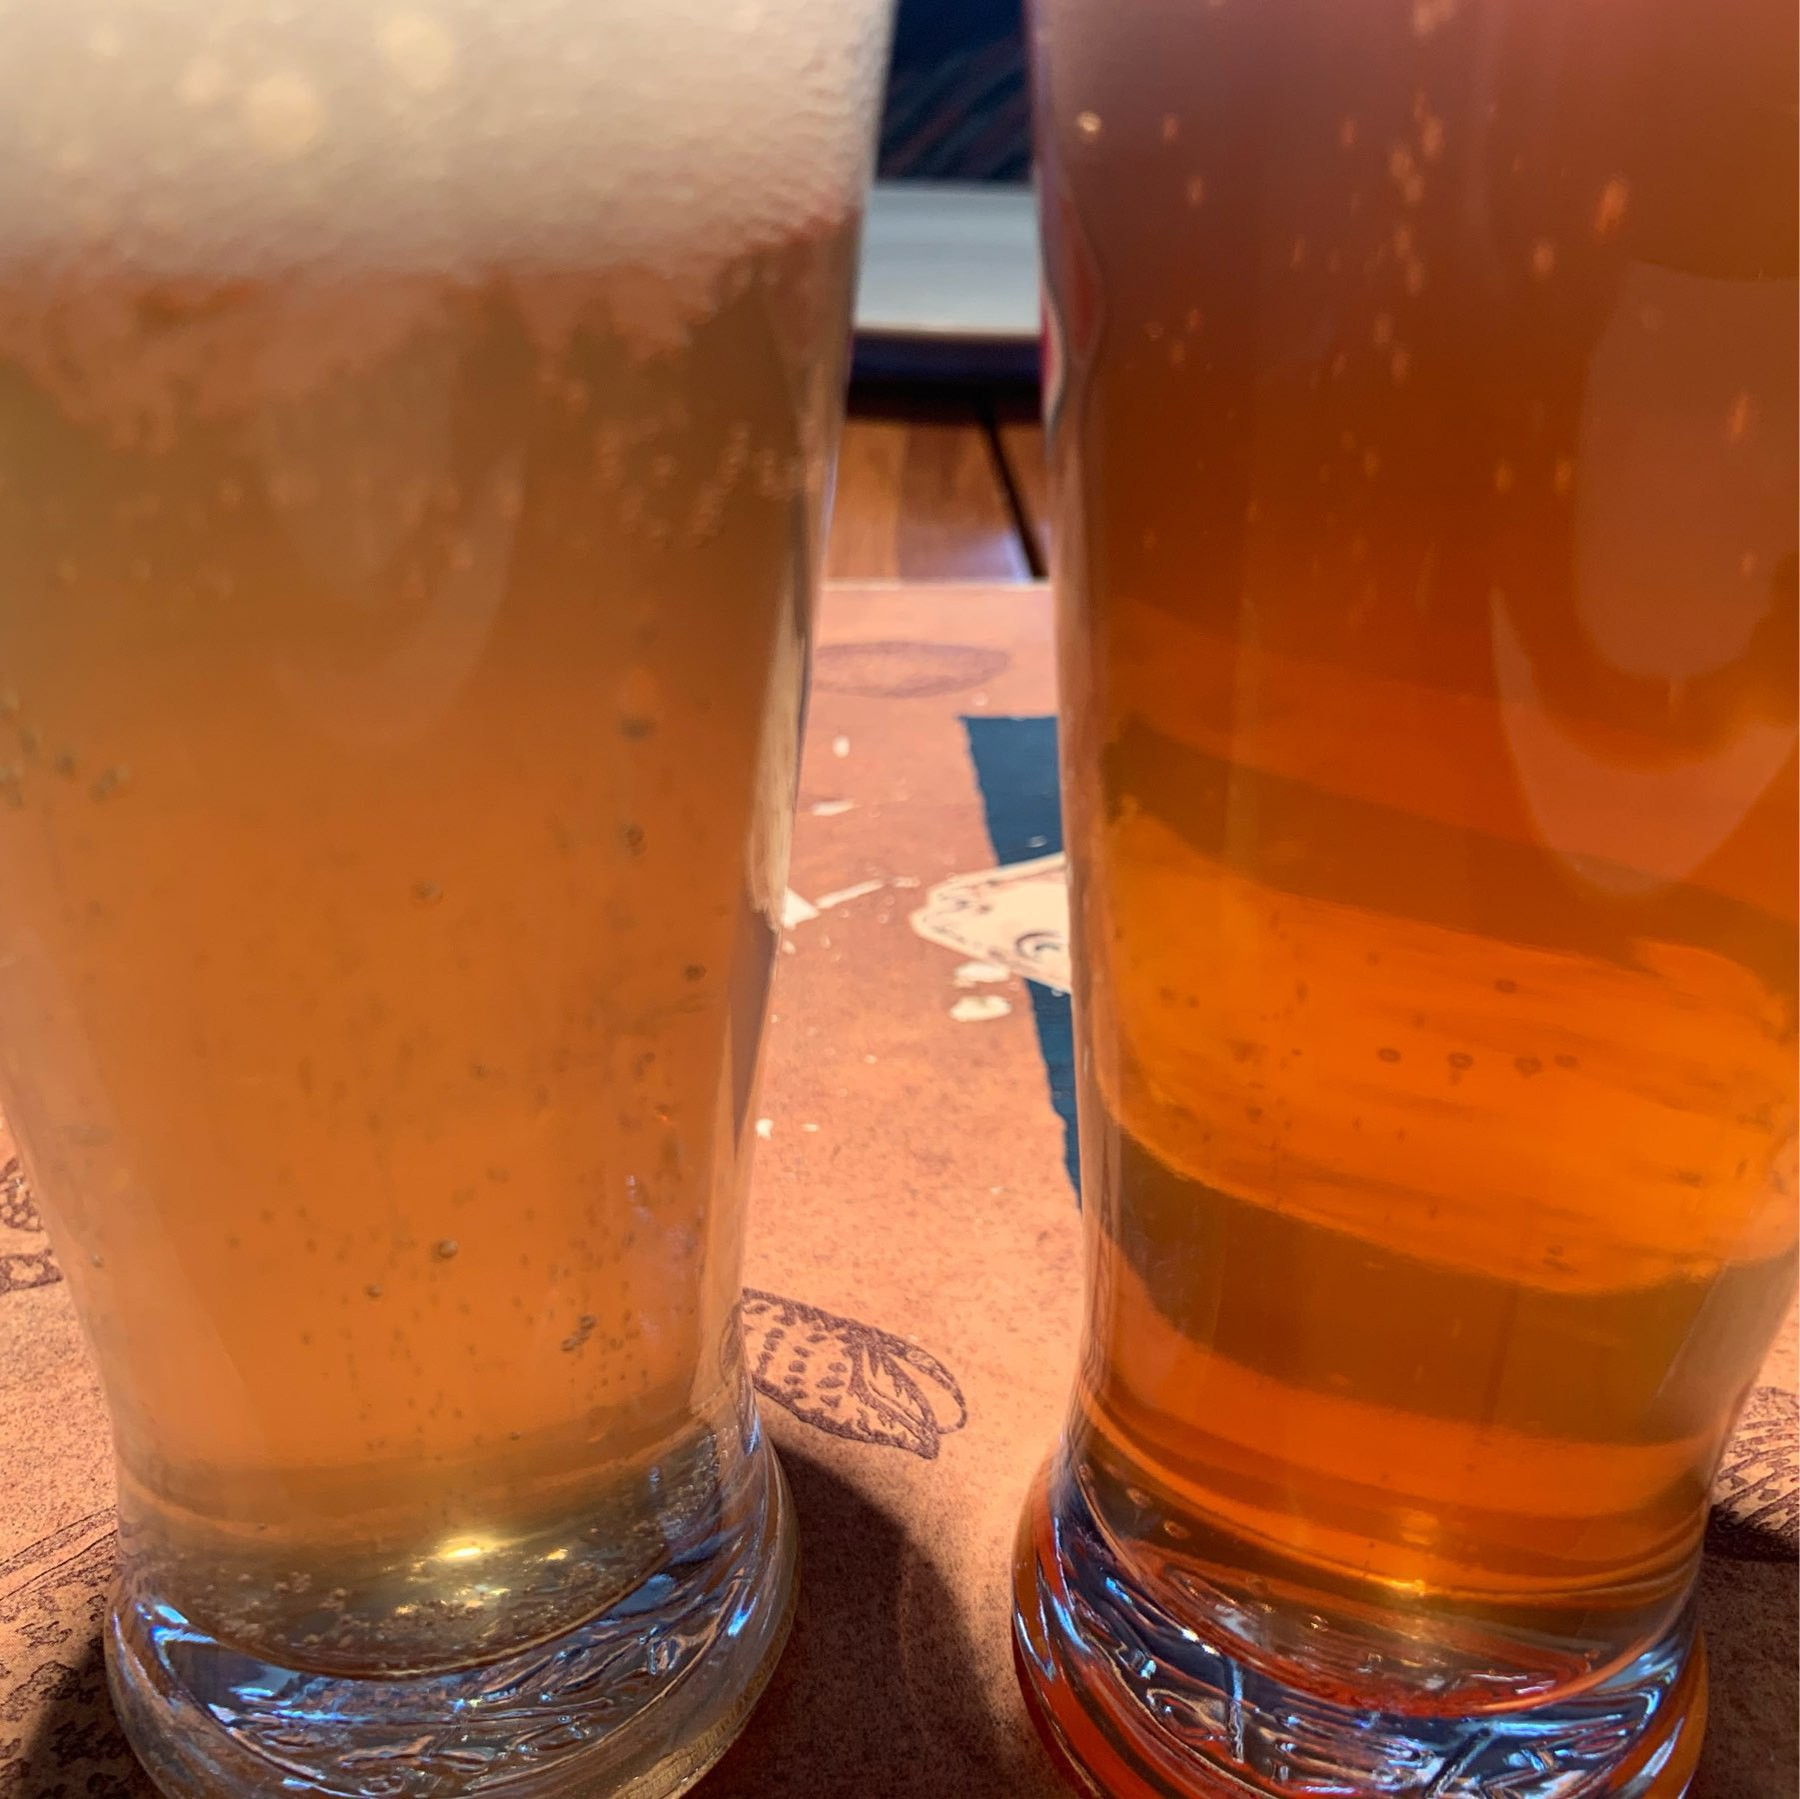 the lime beer on the left is beer uellow, the raspberry infused one on the right is distinctly pink